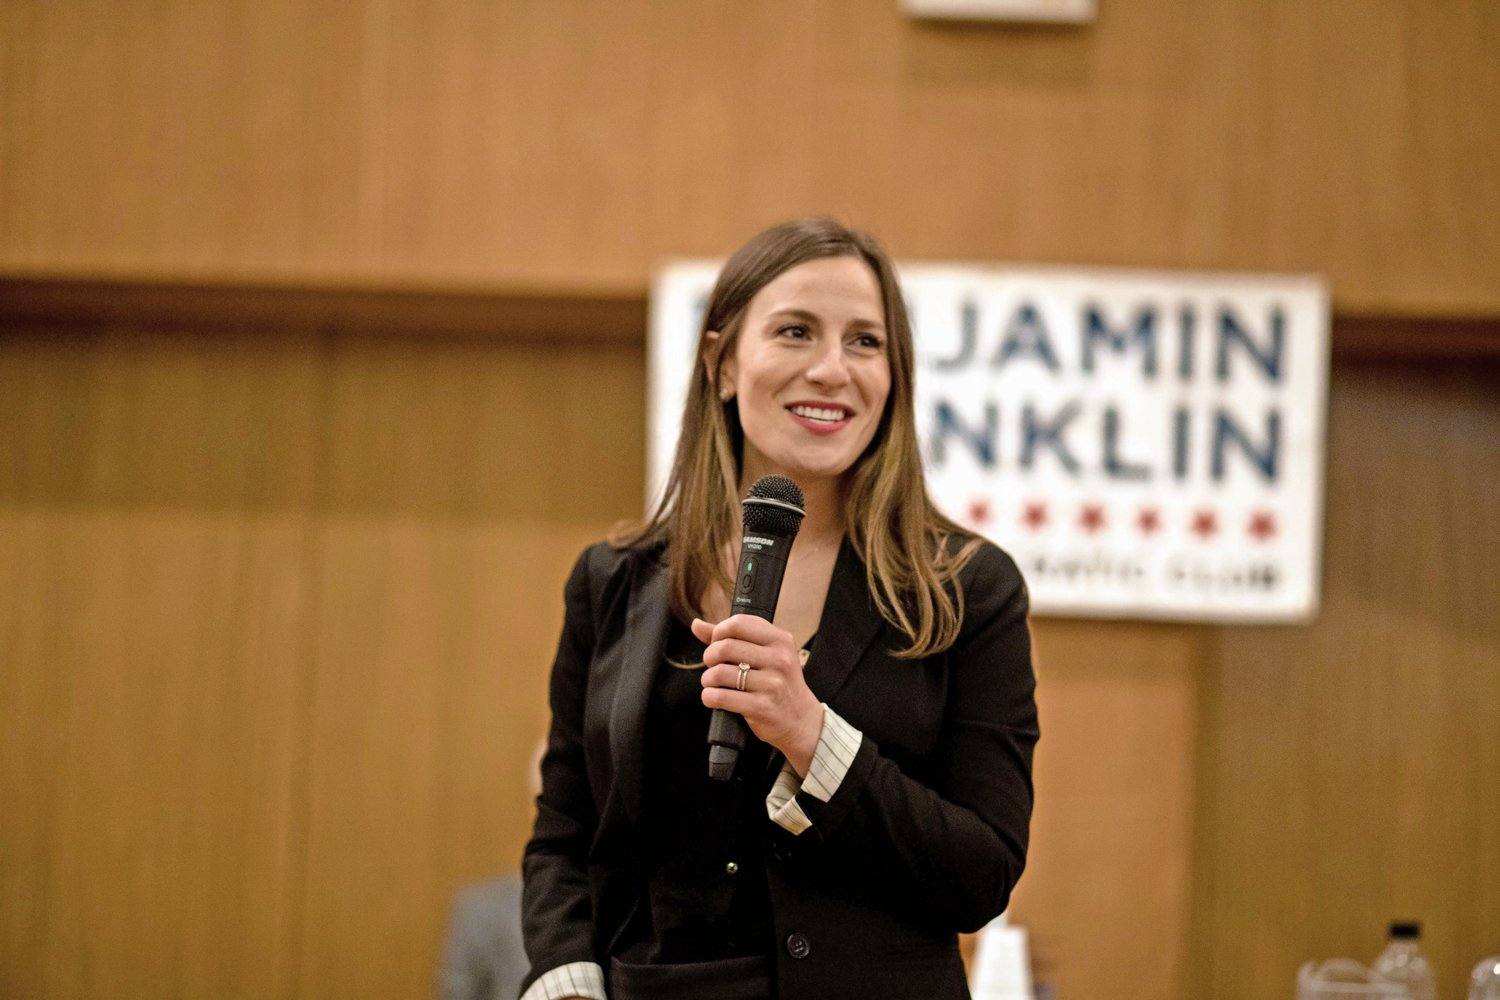 Alessandra Biaggi addresses the crowd at an endorsement meeting held by the Benjamin Franklin Reform Democratic Club on April 25, at which she squared off against incumbent state Sen. Jeffrey Klein, to whom she lost the endorsement. Despite this setback, she prevailed in the primary on Sept. 13.